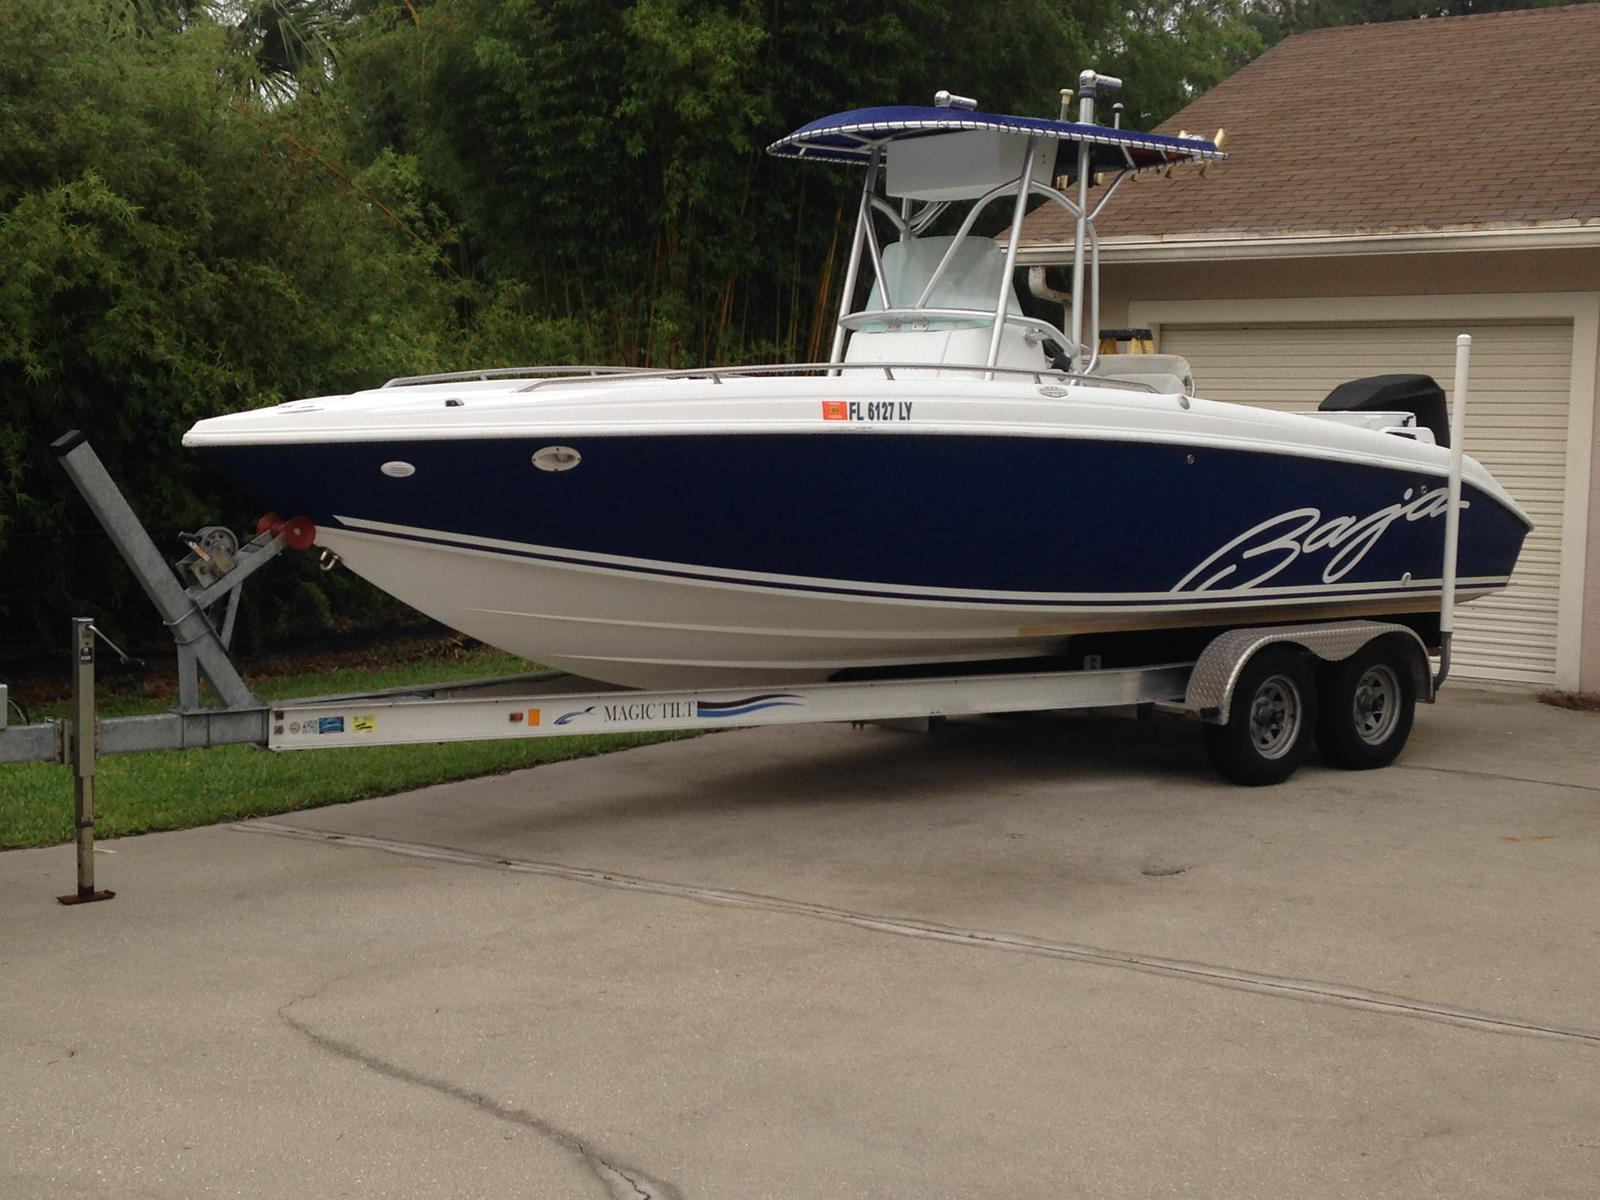 Inventory from Baja, MO7 and Donzi Boats FB Marine Group